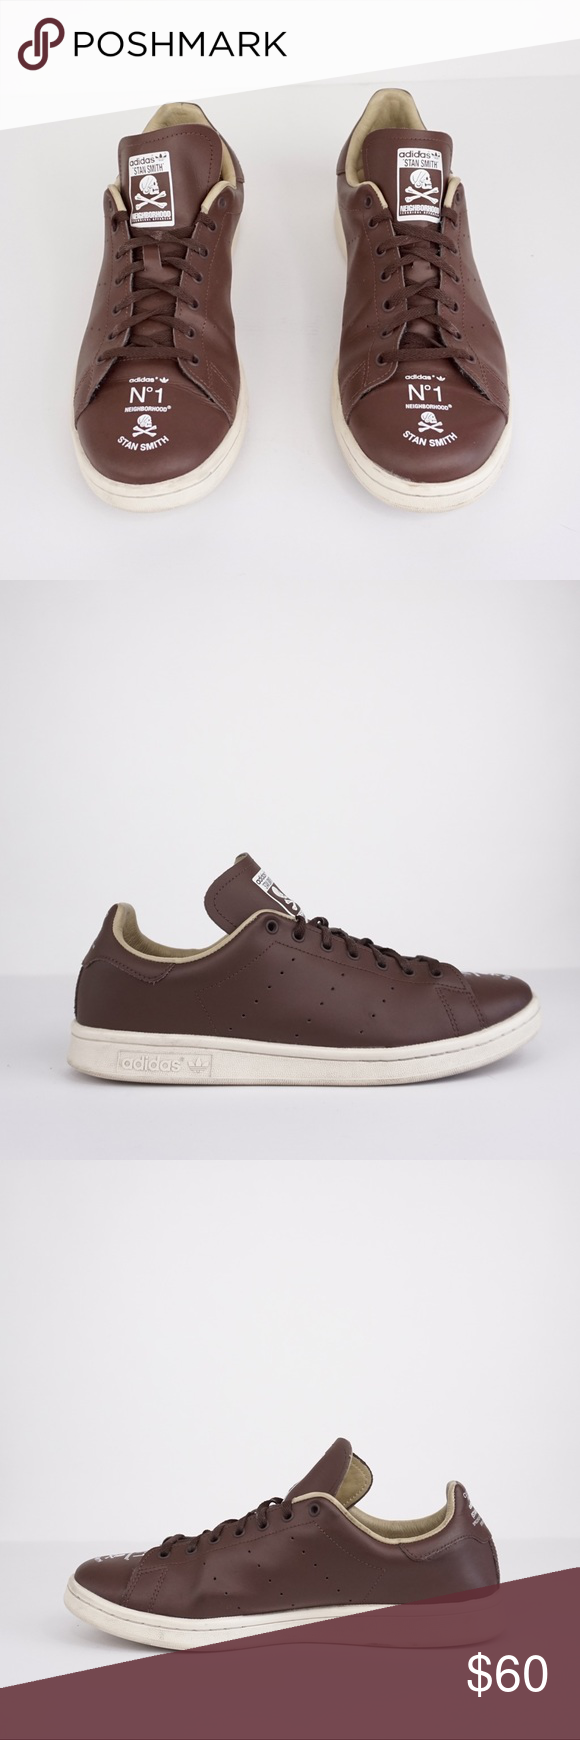 Adidas   Stan Smith Collection Brown Sneakers   11 Adidas   Stan Smith Collection Brown Sneakers   1...